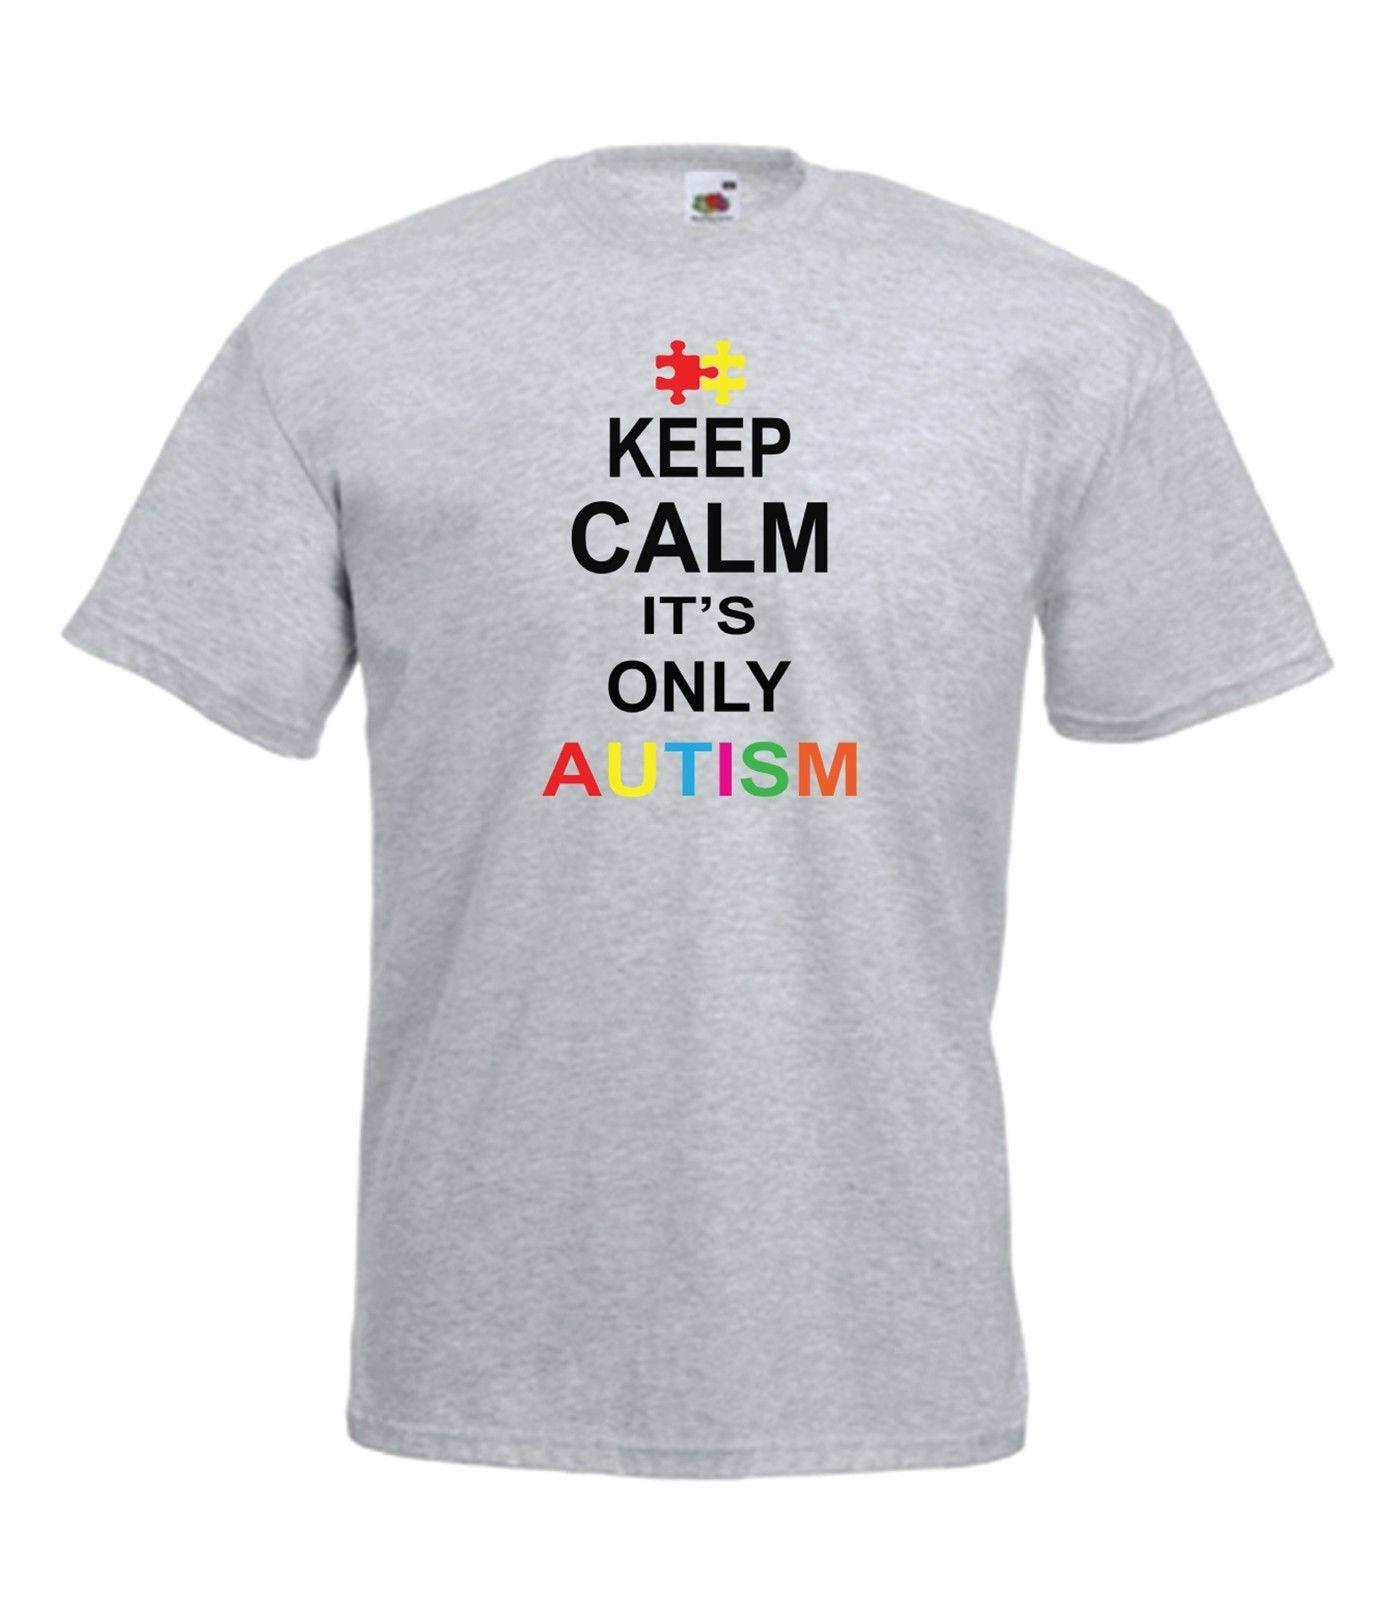 KEEP CALM ITS AUTISM Autistic Xmas Birthday Gift Ideas Top Mens Womens T SHIRT Funny Unisex Casual Tee Cool Shirts Design Designs From